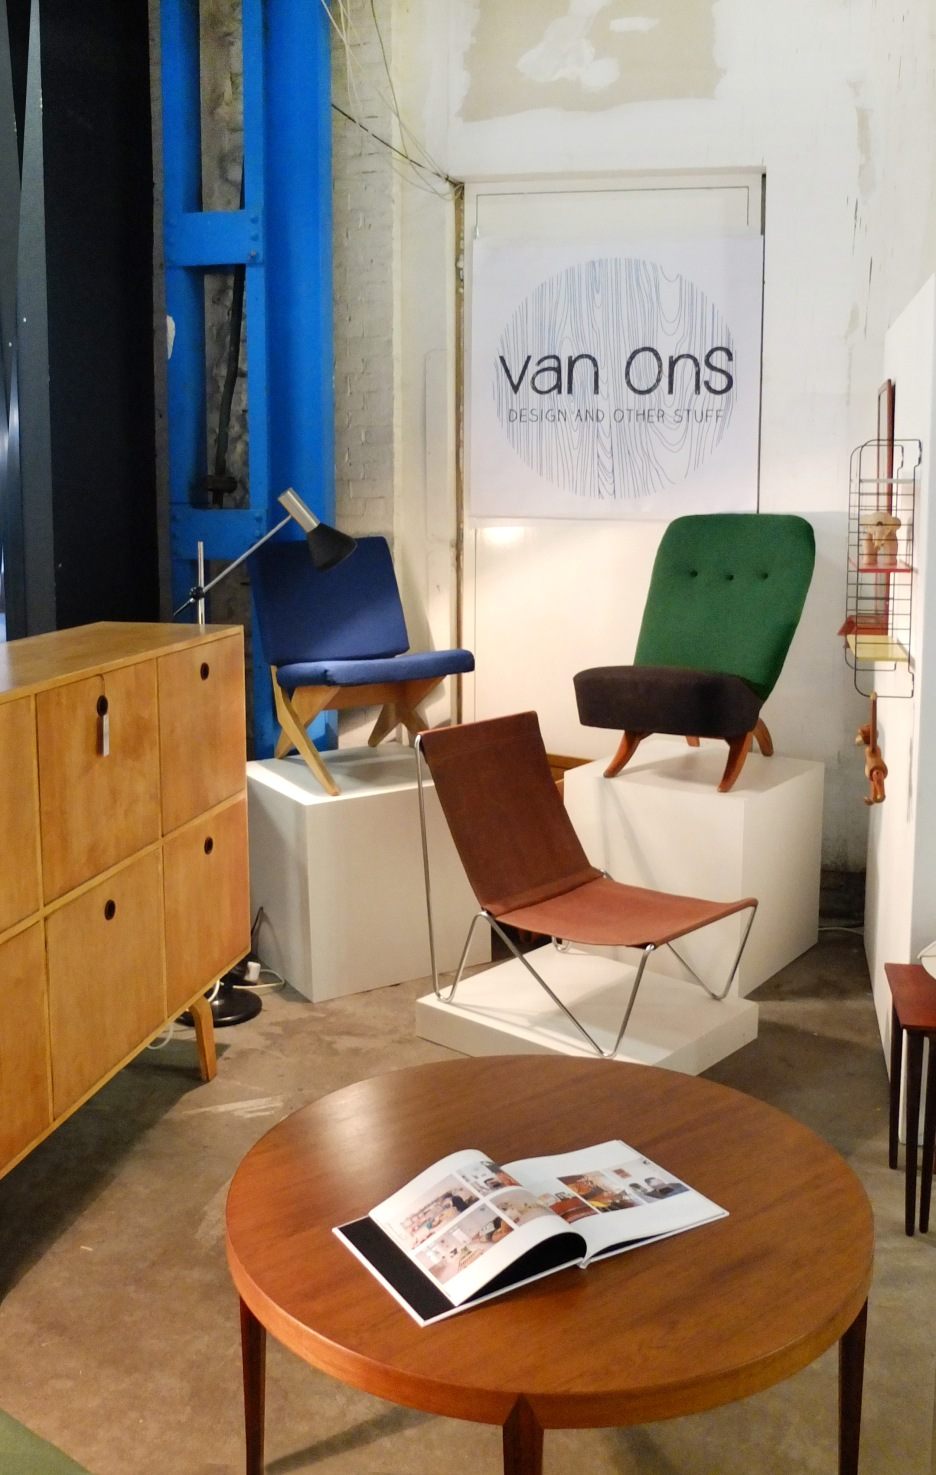 van OnS at the design Icons Amsterdam